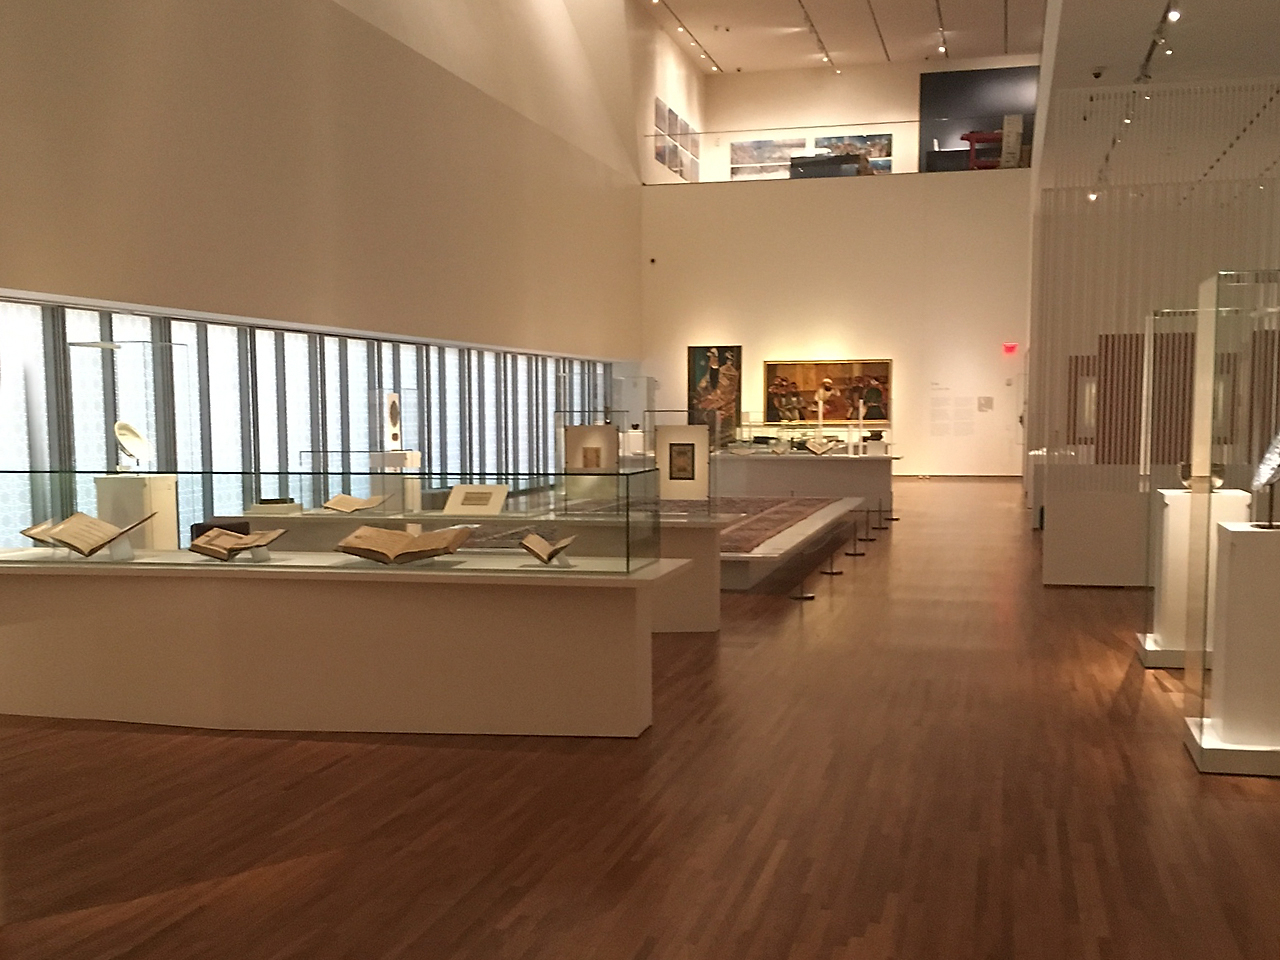 museum exhibition of ancient art objects